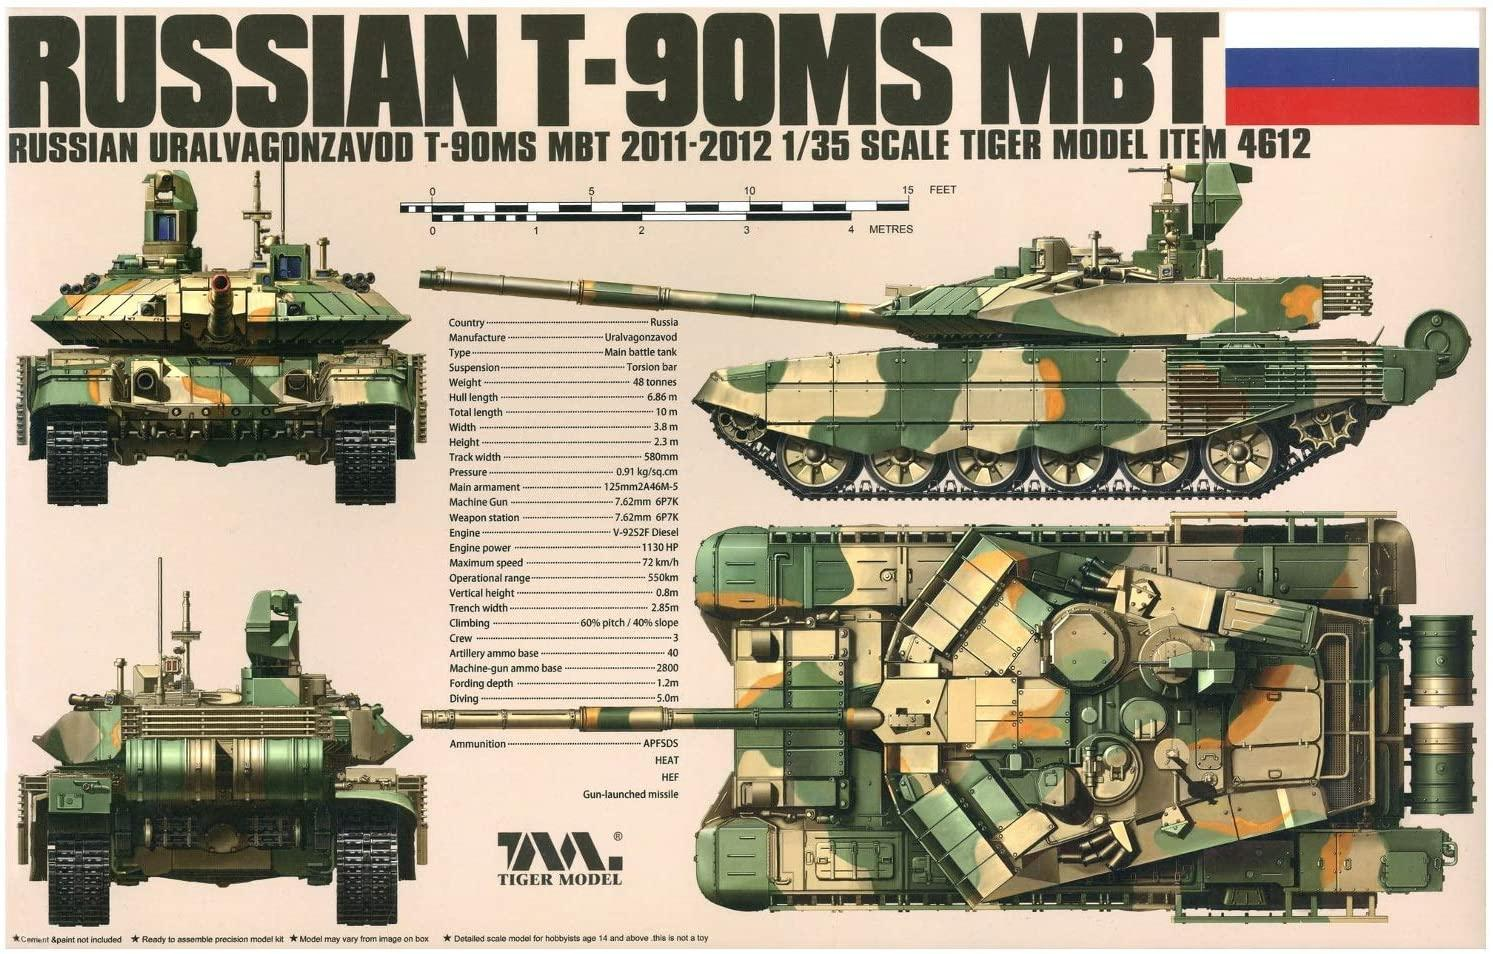 T-90MS a new version of legendary Russian 'flying tank'